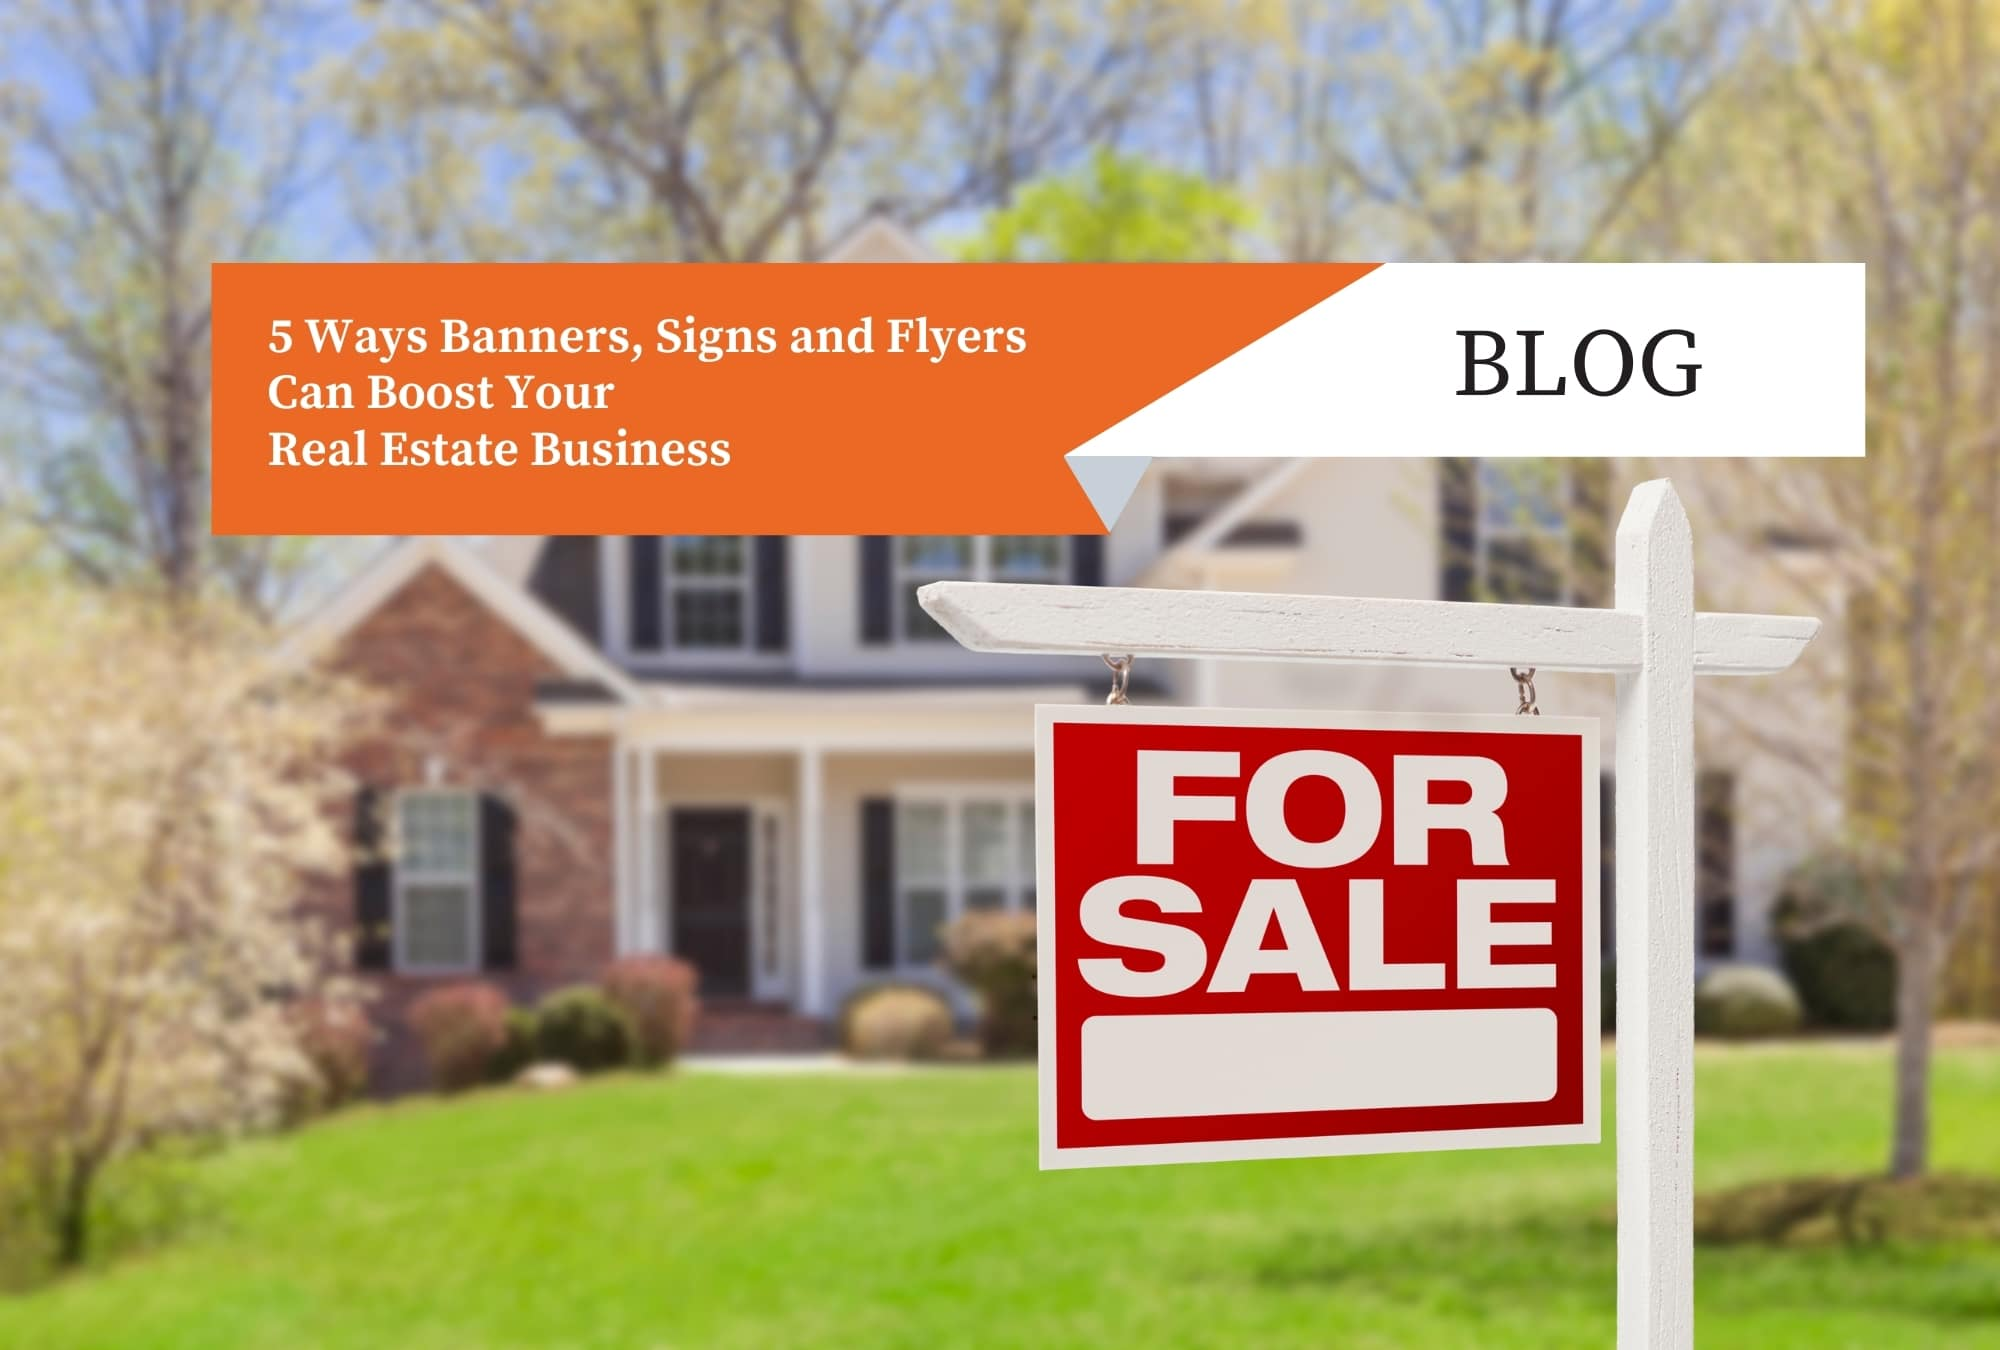 5 Ways Banners, Signs and Flyers Can Boost Your Real Estate Business